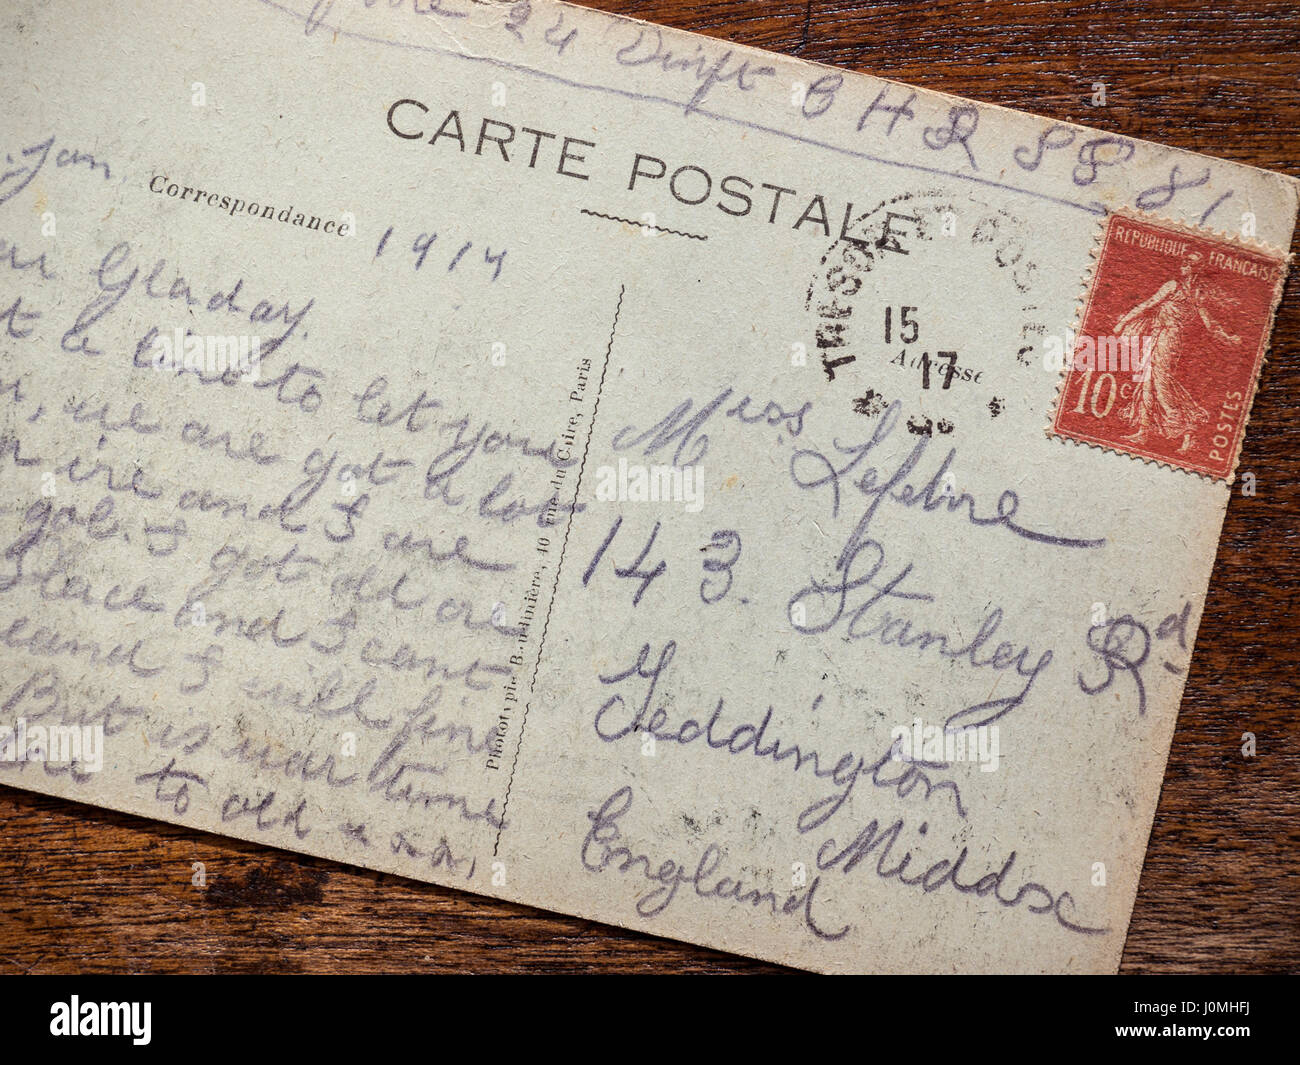 Poignant vintage historic WW1 1917 postcard, sent from the battle front in Verdun France, by a British soldier letting - Stock Image